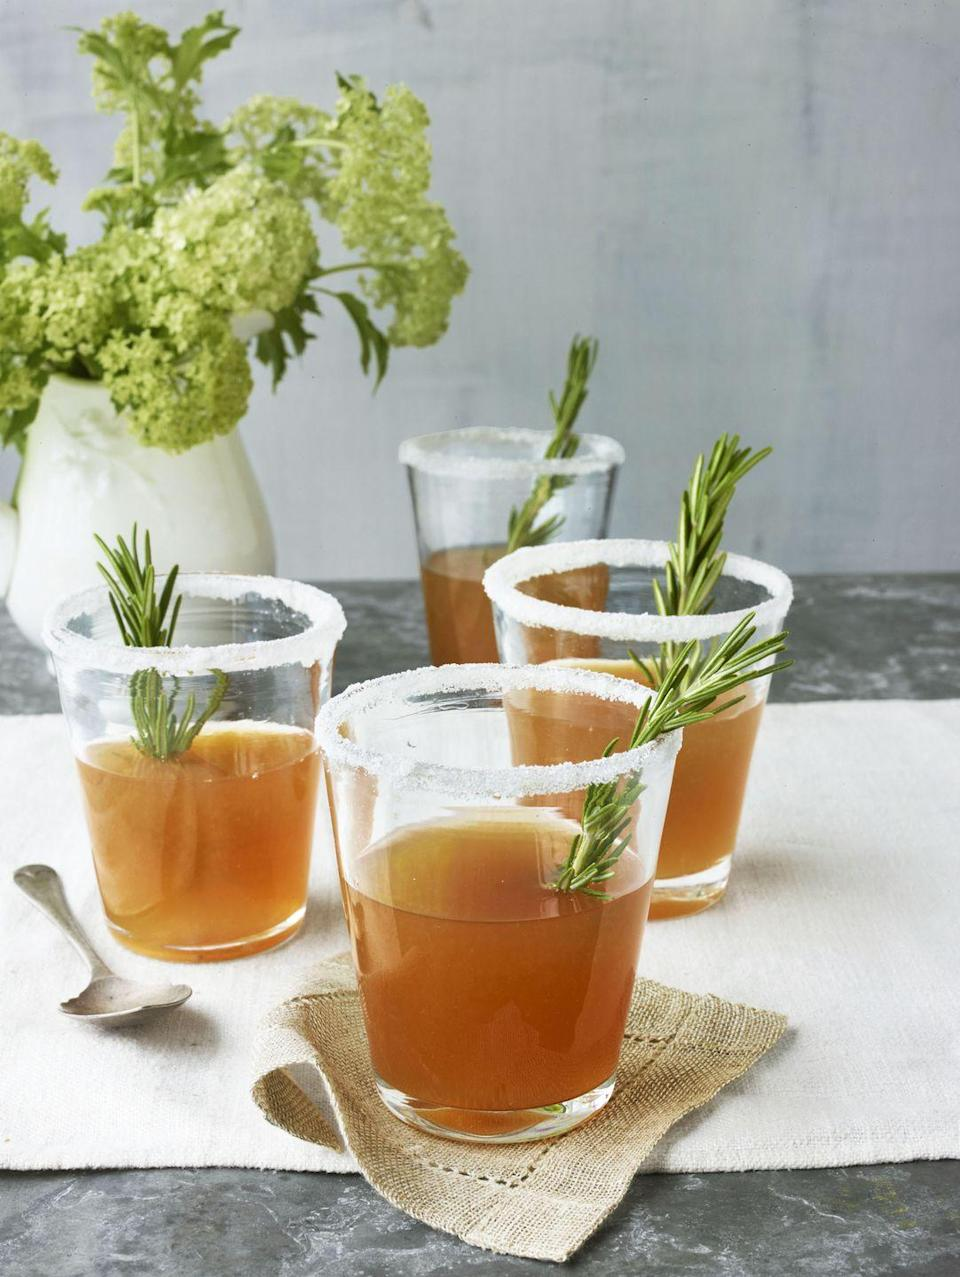 """<p>Honey, cognac, and an infusion of rosemary—this sweet, boozy drink is great for the holidays or any time.</p><p><strong><a href=""""https://www.countryliving.com/food-drinks/recipes/a4153/rosemary-infused-honey-sidecars-recipe-clv0413/"""" rel=""""nofollow noopener"""" target=""""_blank"""" data-ylk=""""slk:Get the recipe"""" class=""""link rapid-noclick-resp"""">Get the recipe</a>.</strong></p>"""